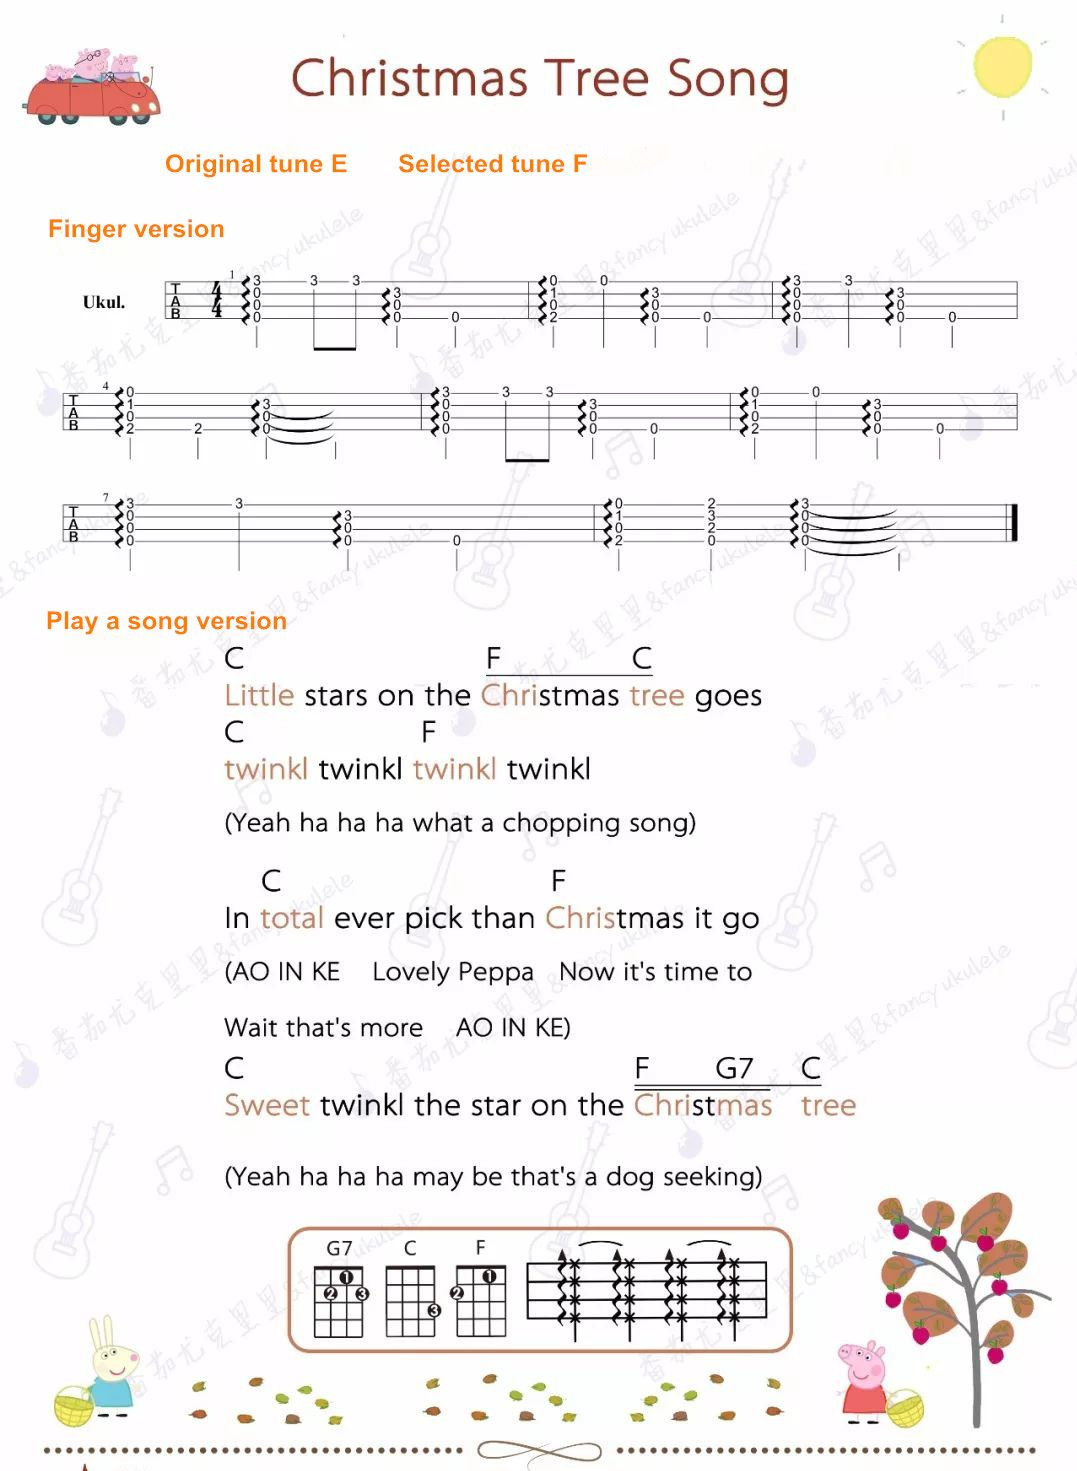 Peppa Pig Ukulele Sheet Christmas Tree Song Peppa Pig Songs Pig Song Peppa Pig